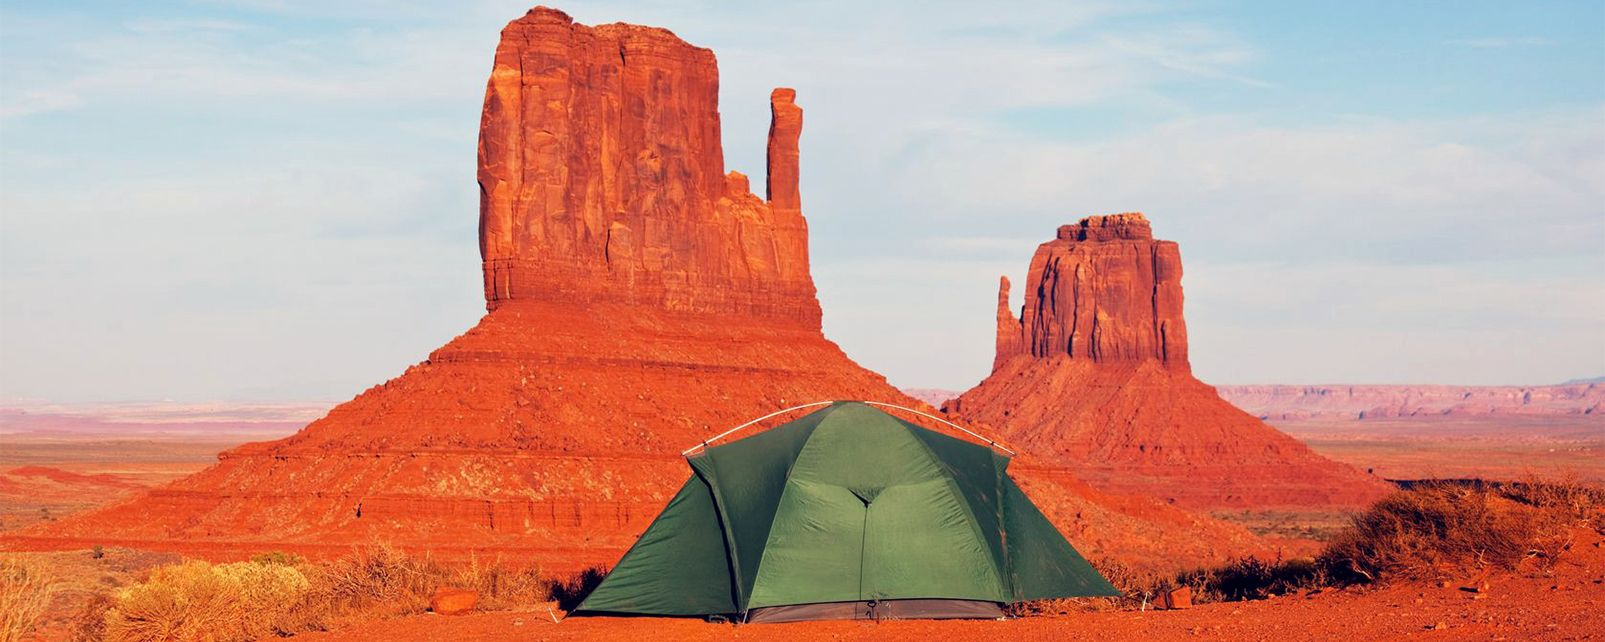 Camping , United States of America